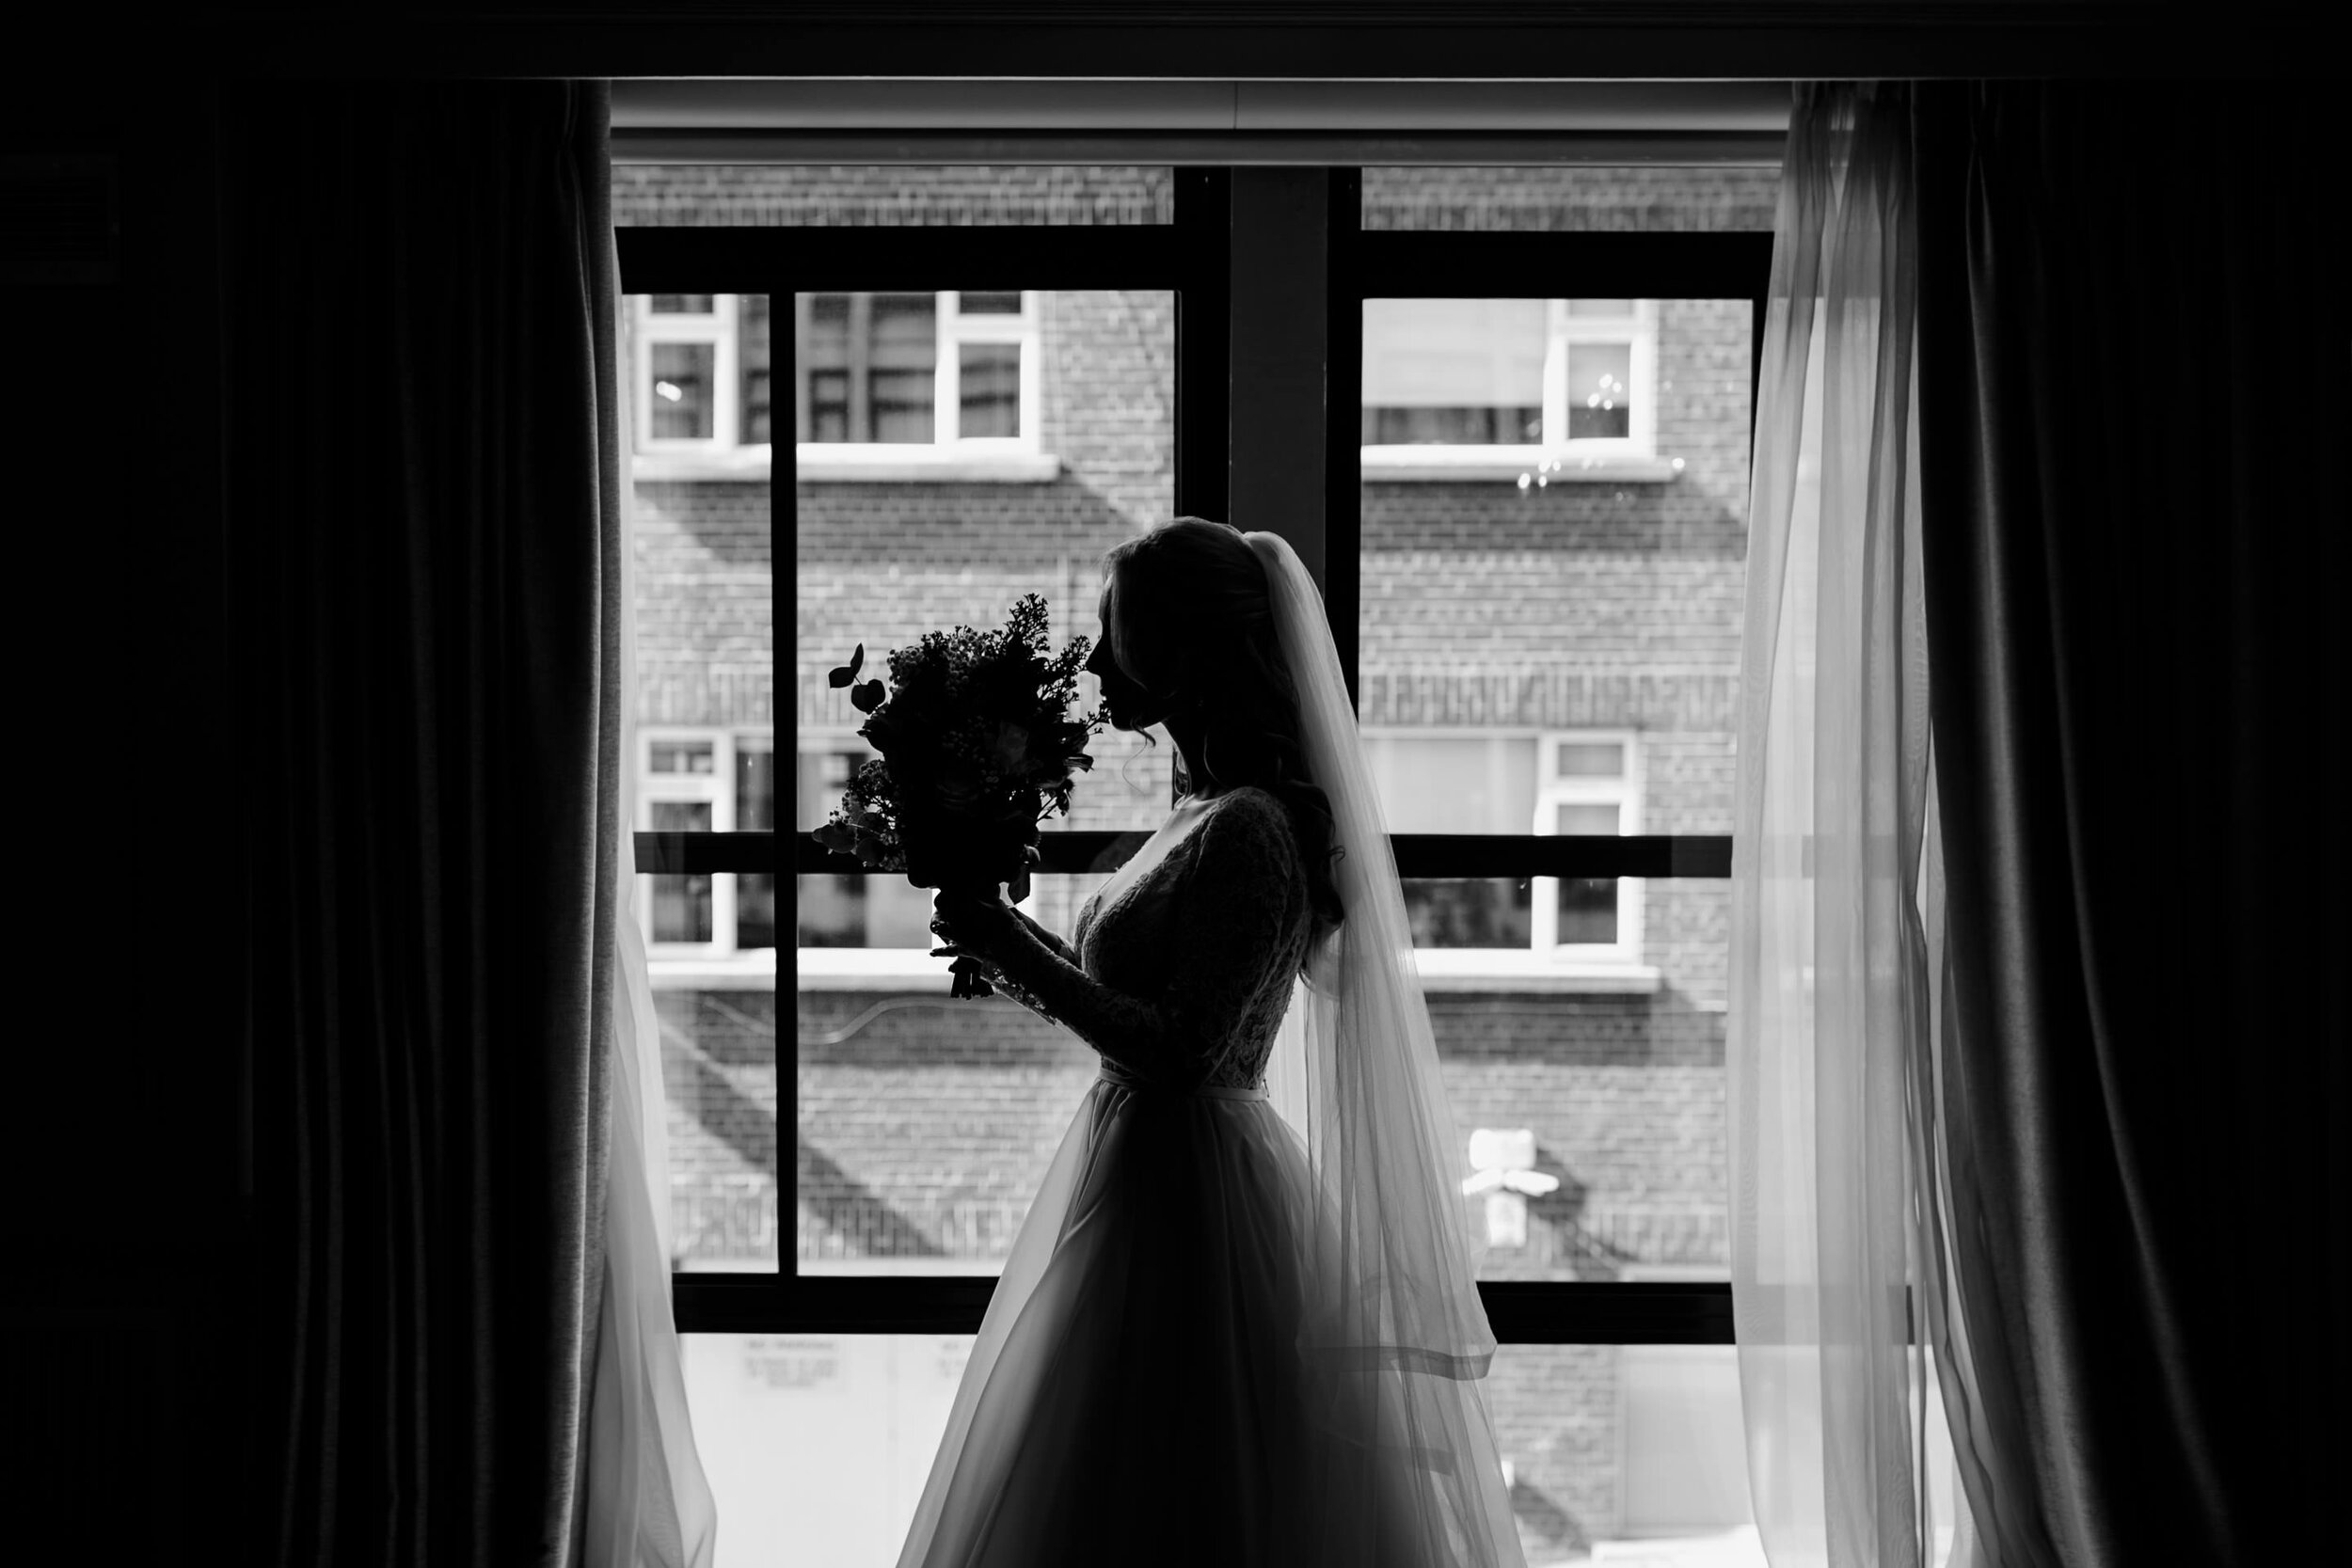 c&s_the_westbury_wedding_photographer_livia_figueiredo_18.jpg